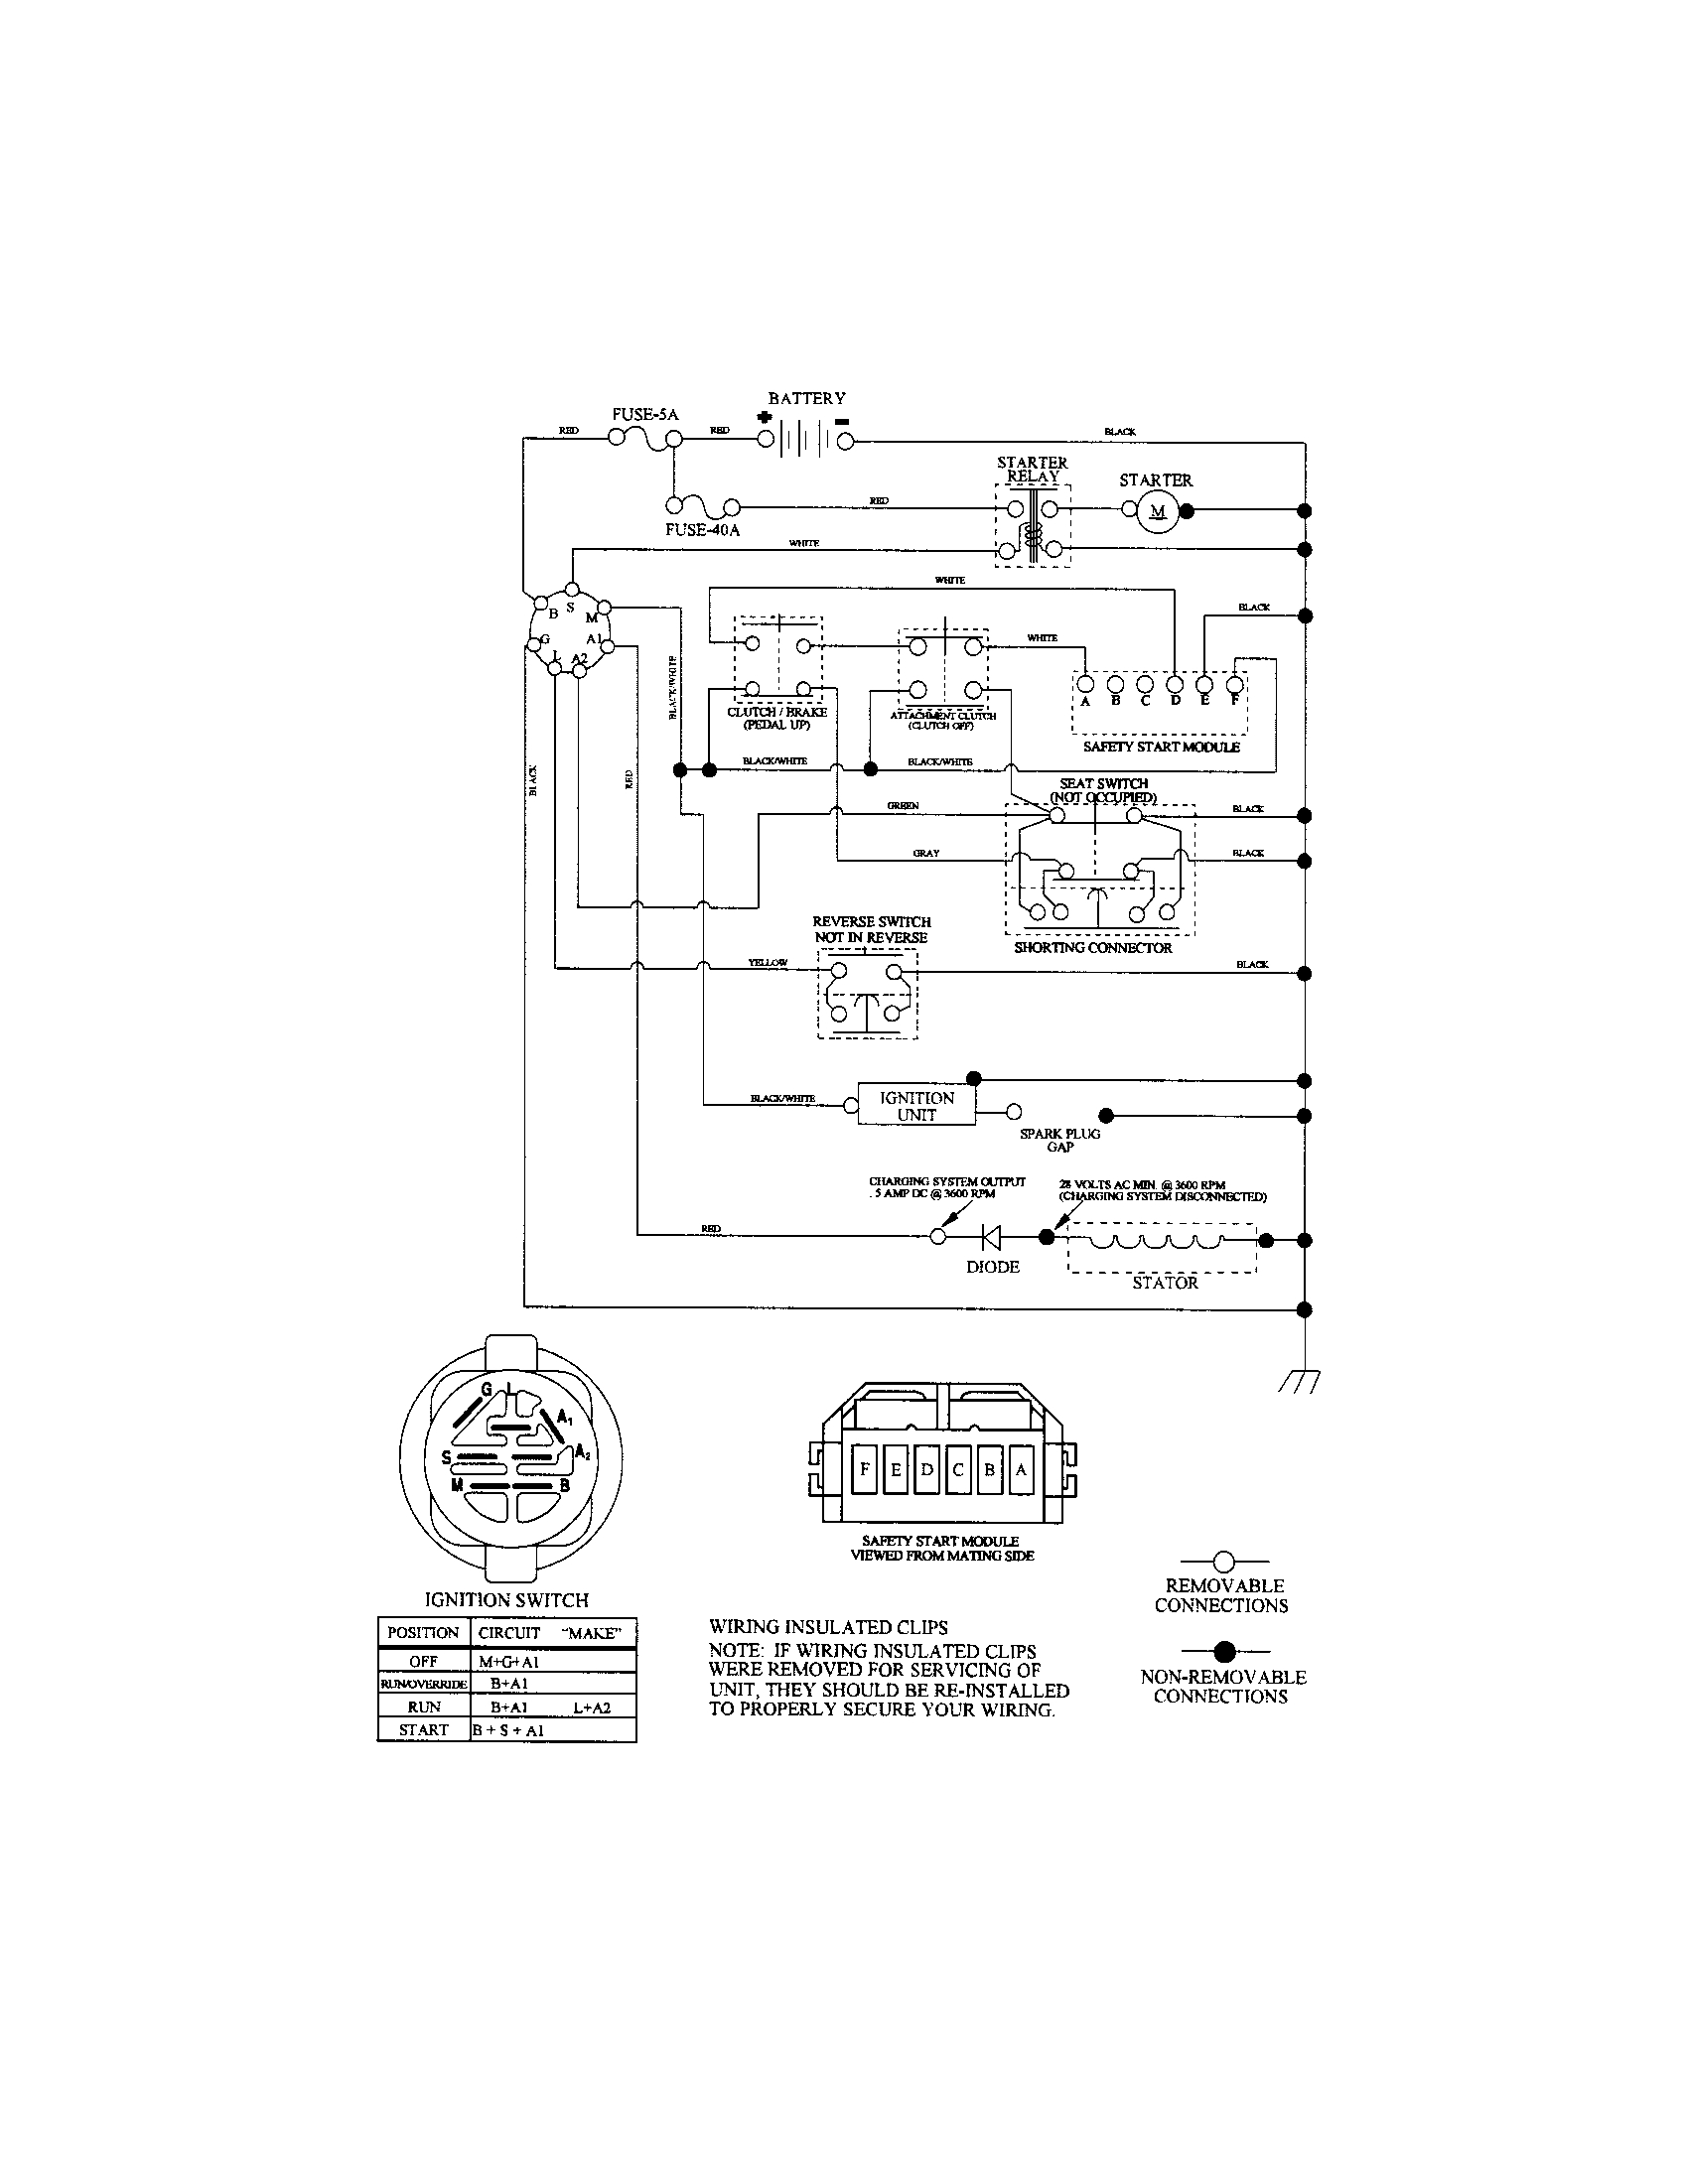 Wiring Diagram Craftsman Model 917